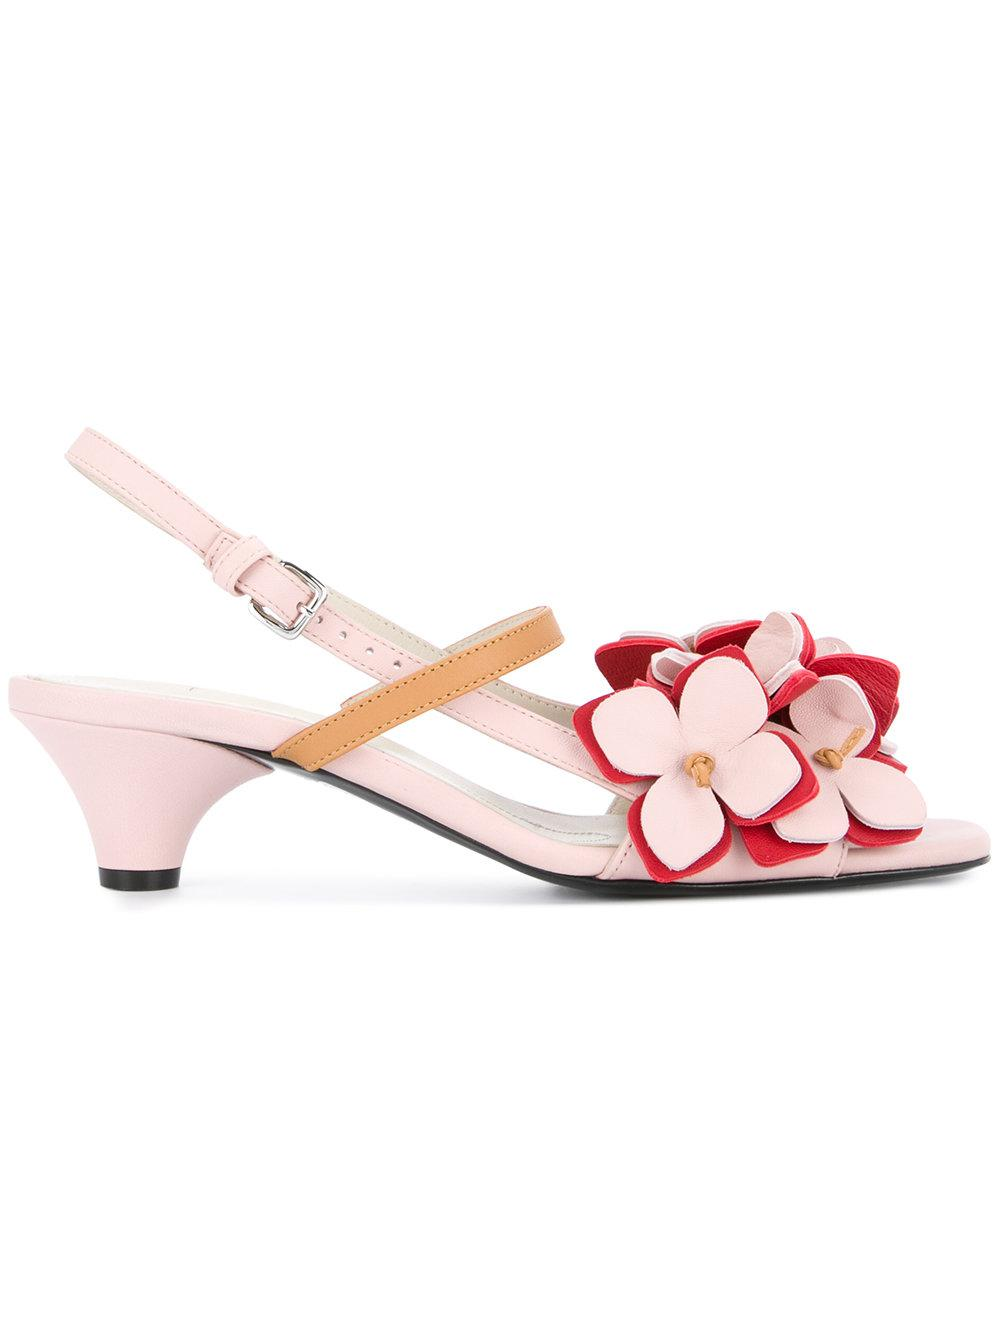 2a9fbb7d4 Lyst - Marni Floral Slingback Pumps in Pink